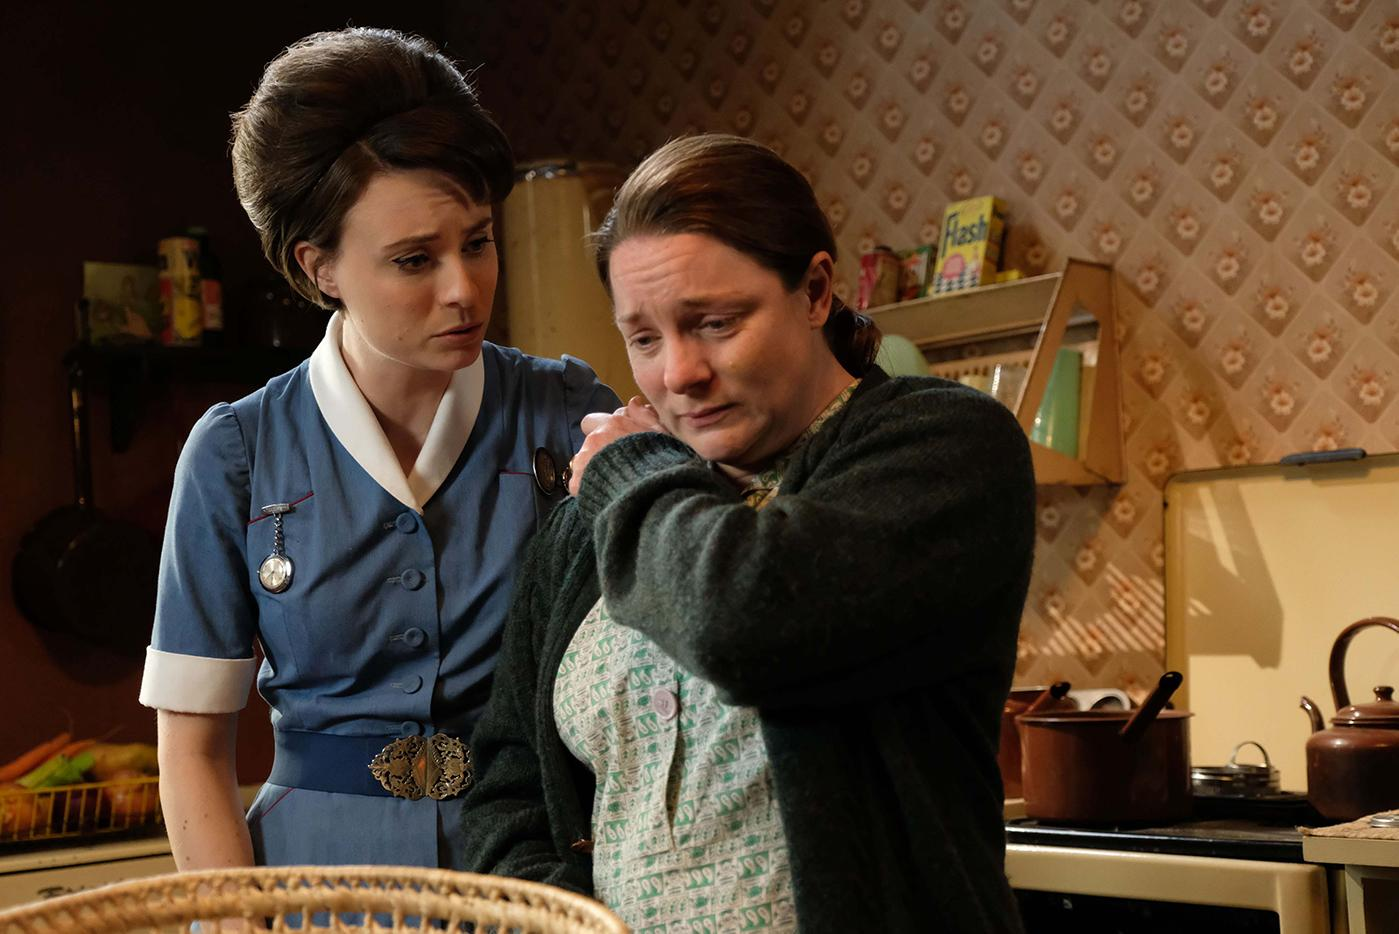 Valerie and Betty Marwick in Call the Midwife. Photo: BBC/Neal Street Productions